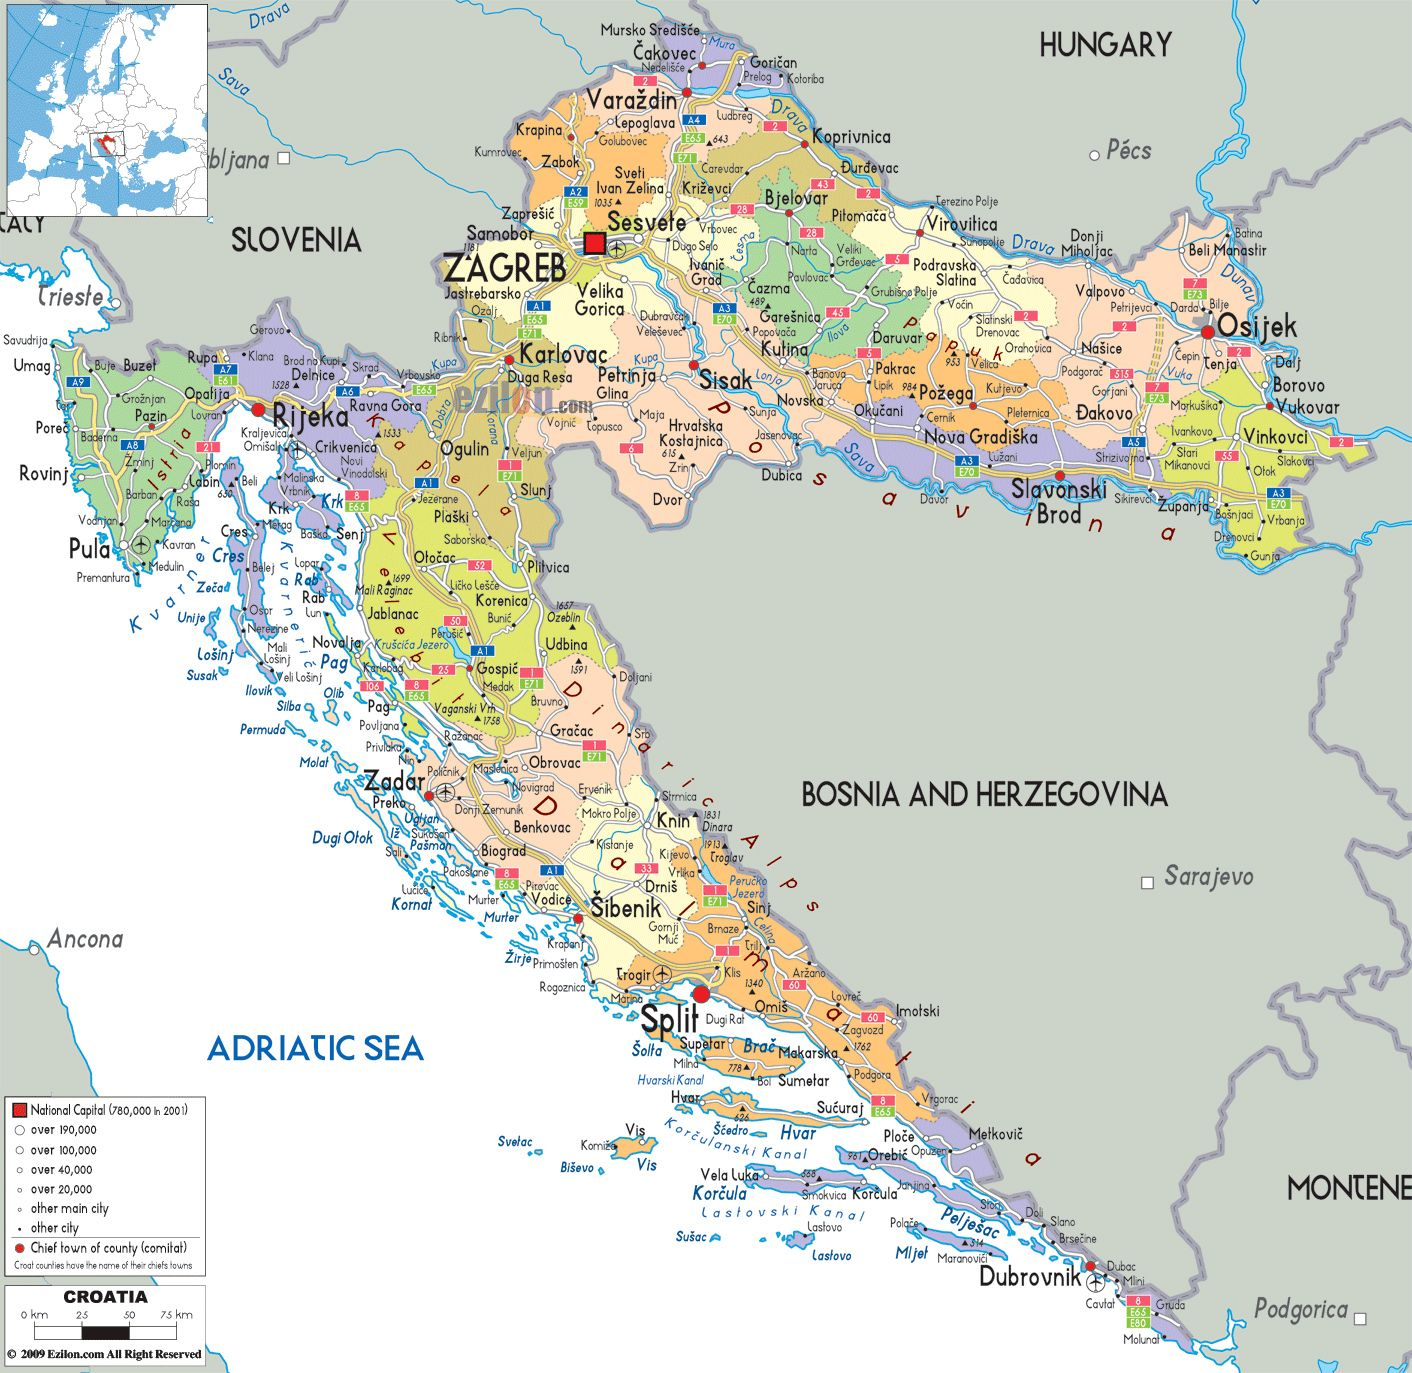 Croatia towns and administrative map of croatia with roads croatia towns and administrative map of croatia with roads cities and airports publicscrutiny Choice Image